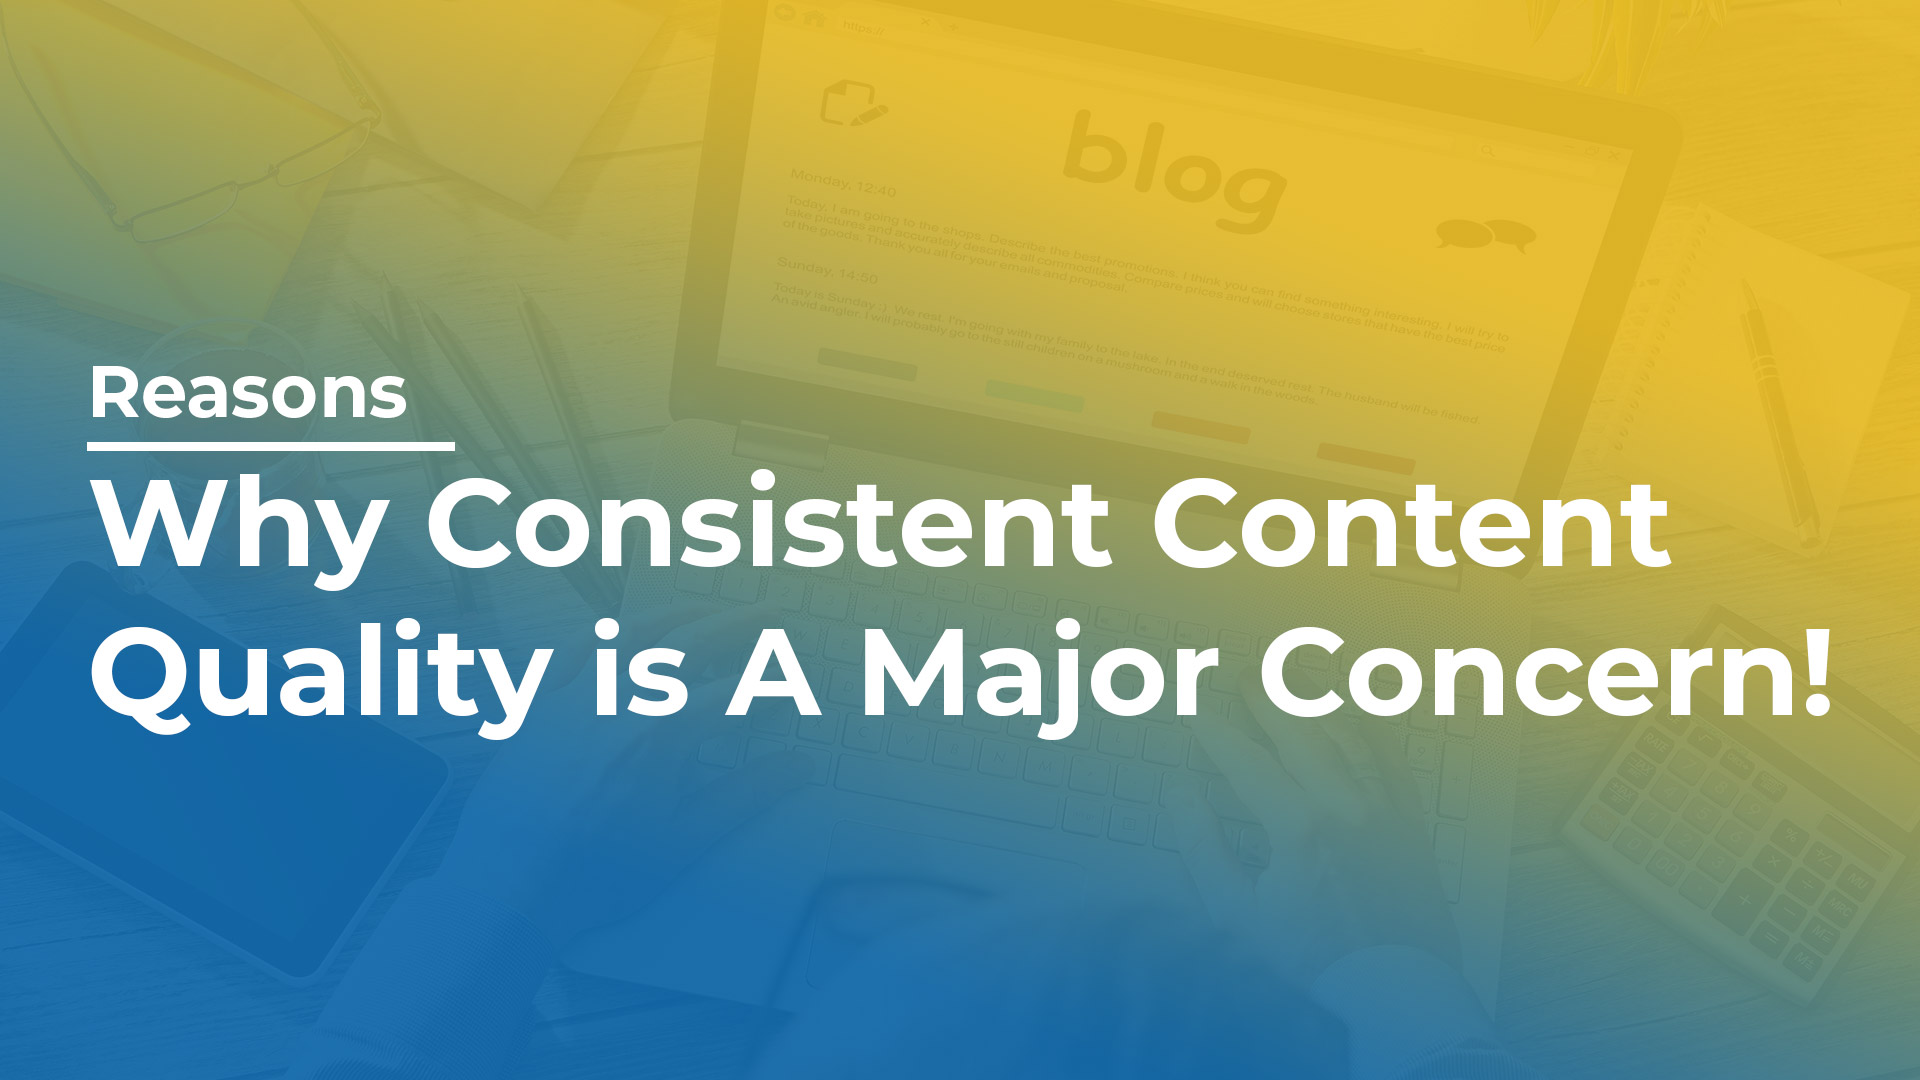 Reasons Why Consistent Content Quality is A Major Concern!